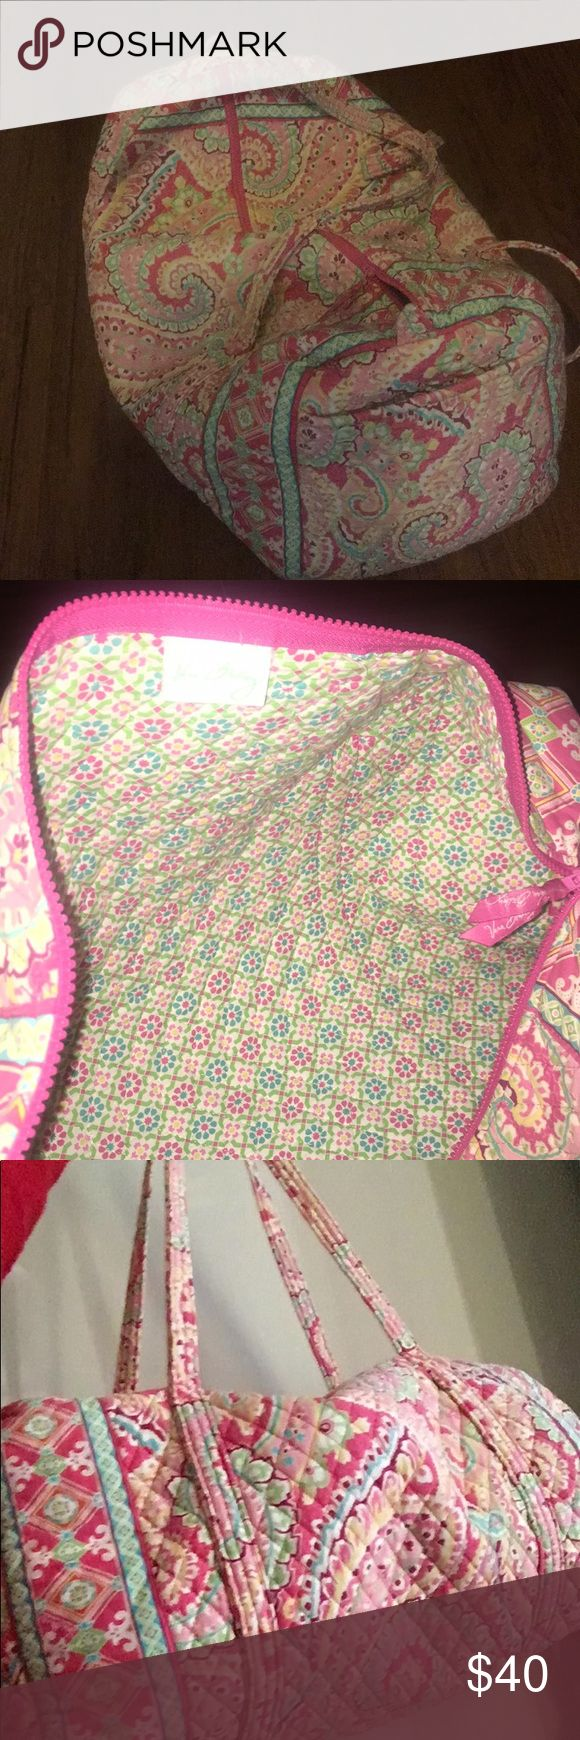 Vera Bradley duffel bag Gently used Vera Bradley duffel bag. Perfect for travel and fits as a carry-on for the plane. Vera Bradley Bags Travel Bags